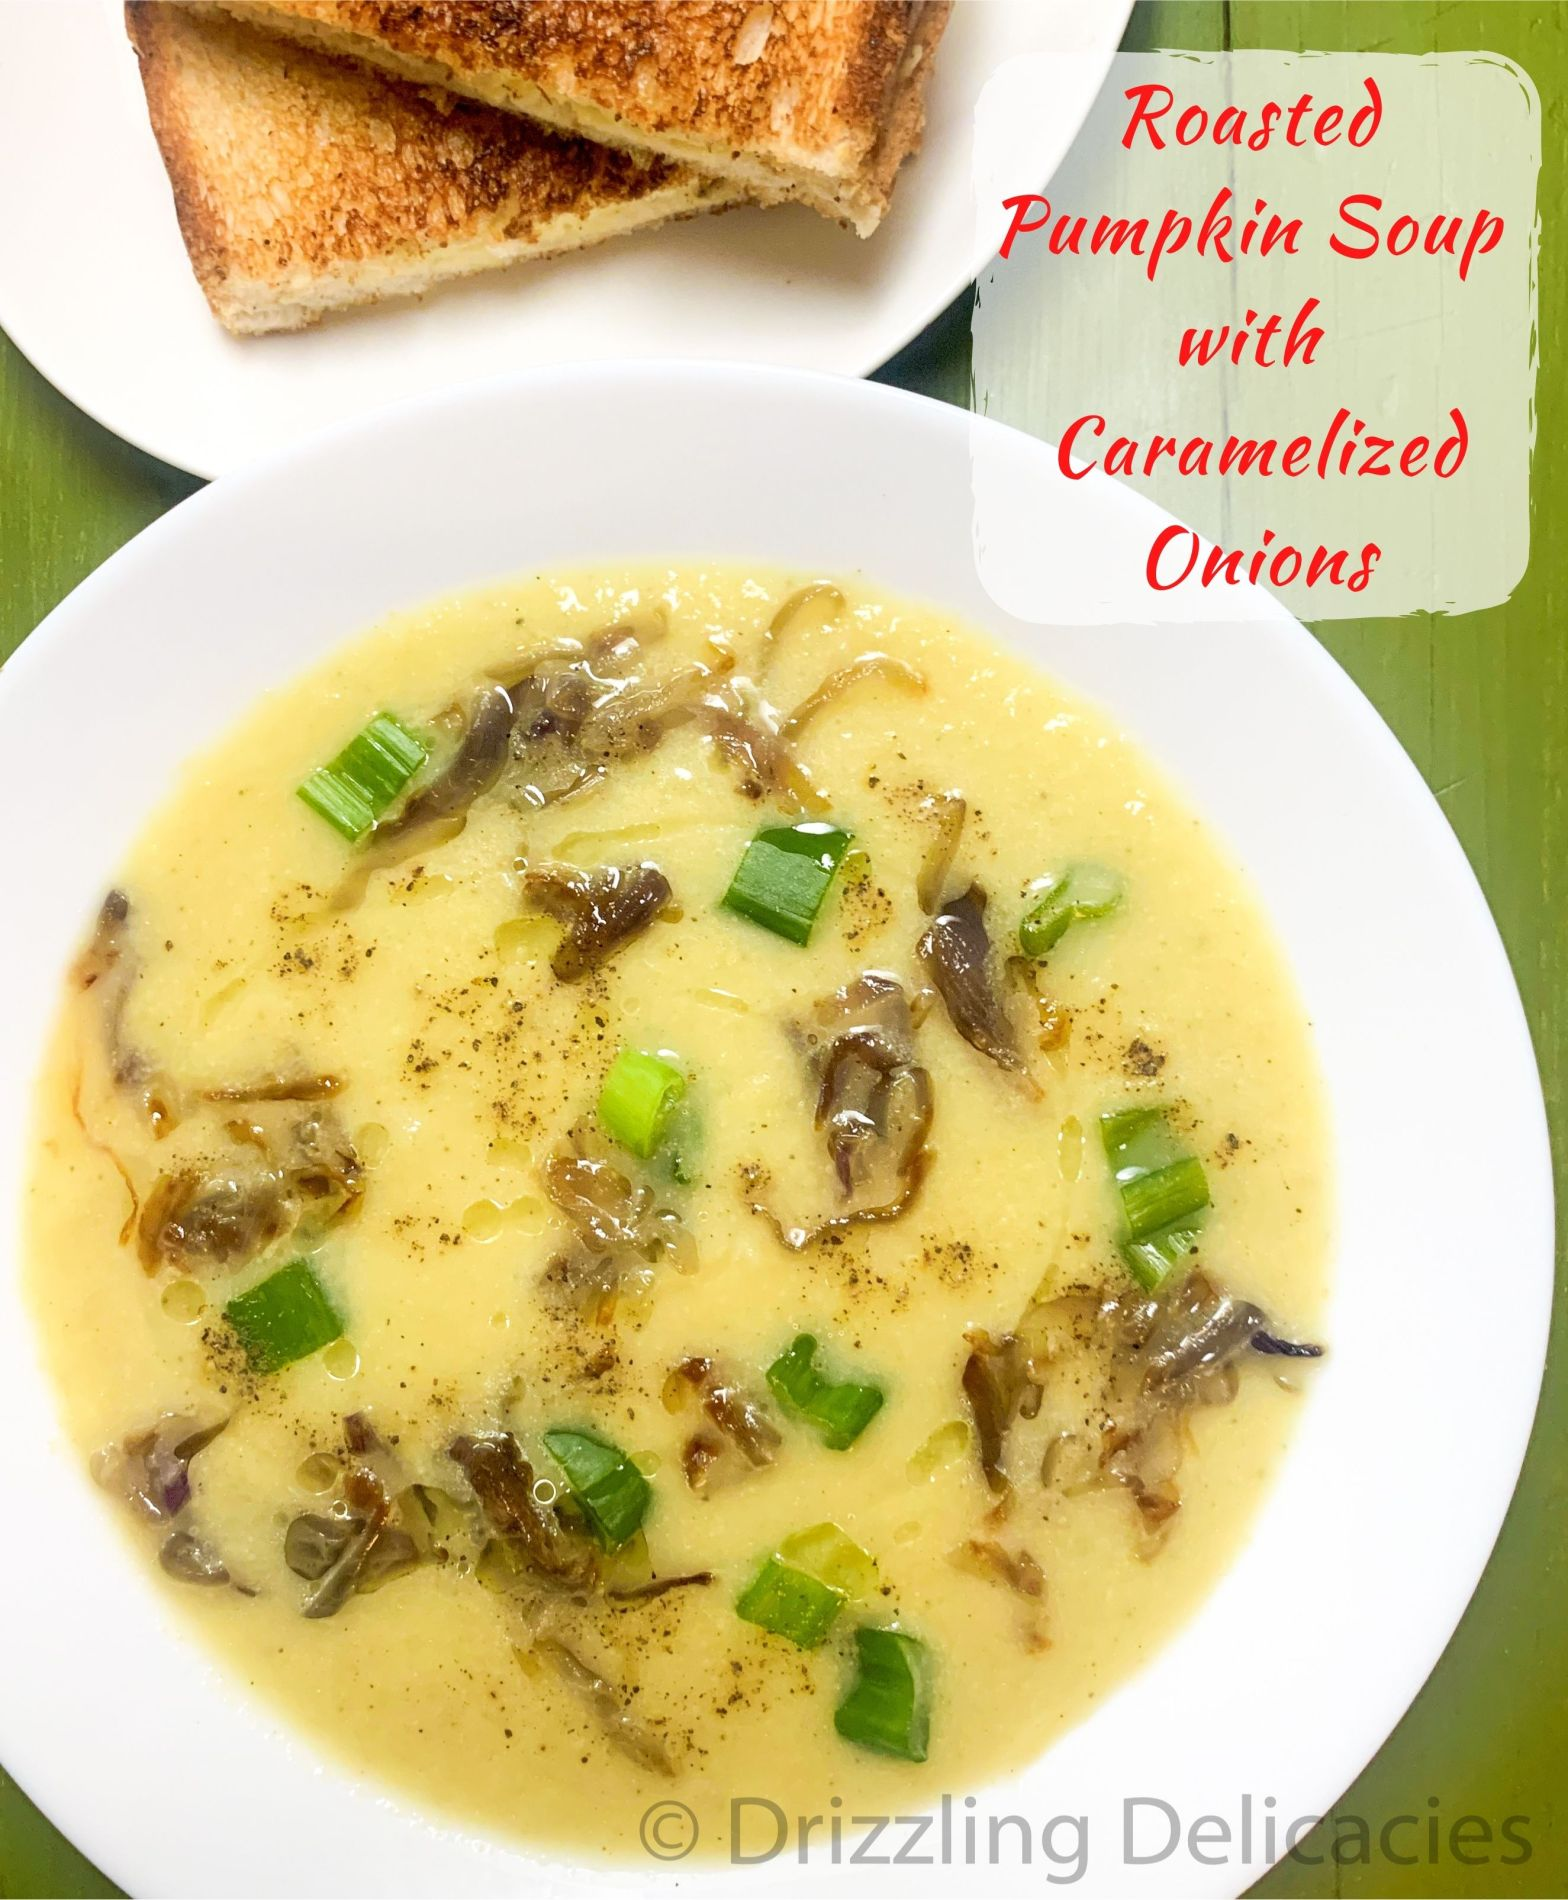 Roasted Pumpkin Soup with Caramelized Onions